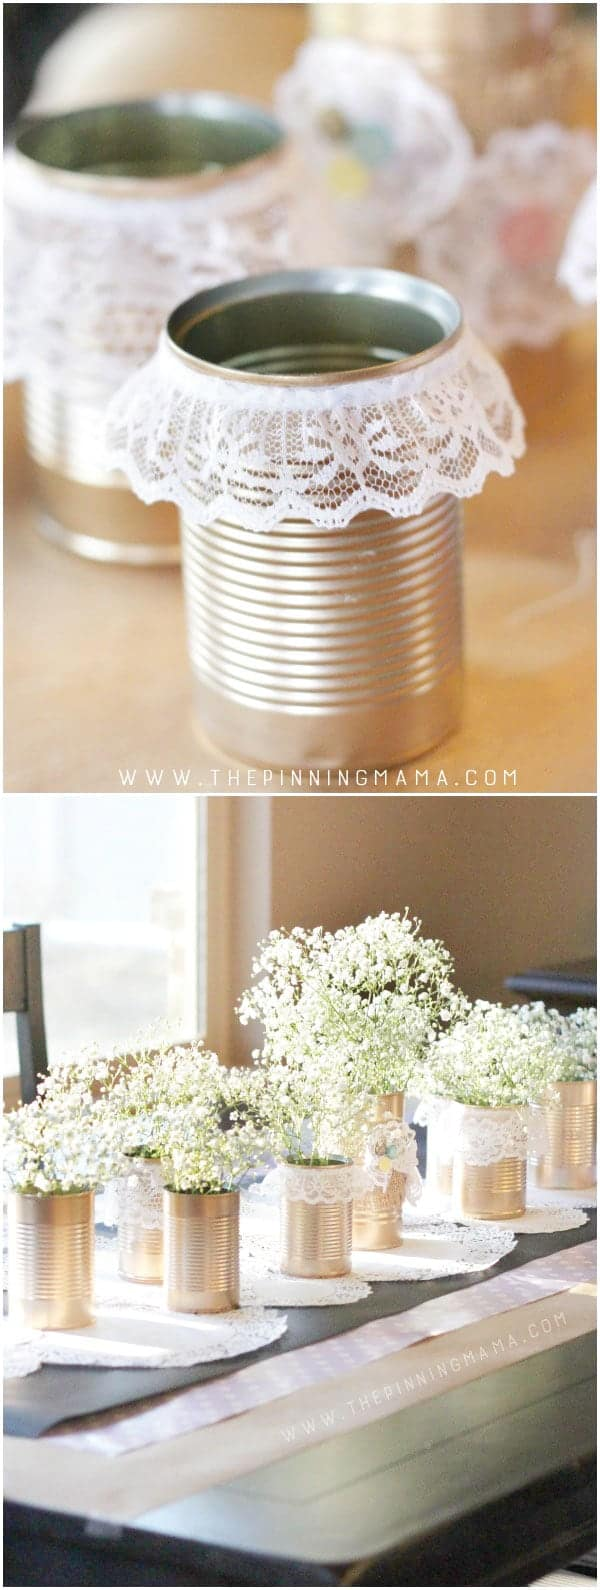 Gold and Lace Tin Can Table Centerpiece - How beautiful would this be for a vintage wedding or a shabby chic baby shower or bridal shower?  This is an easy to make craft idea that turns into stunning decor!